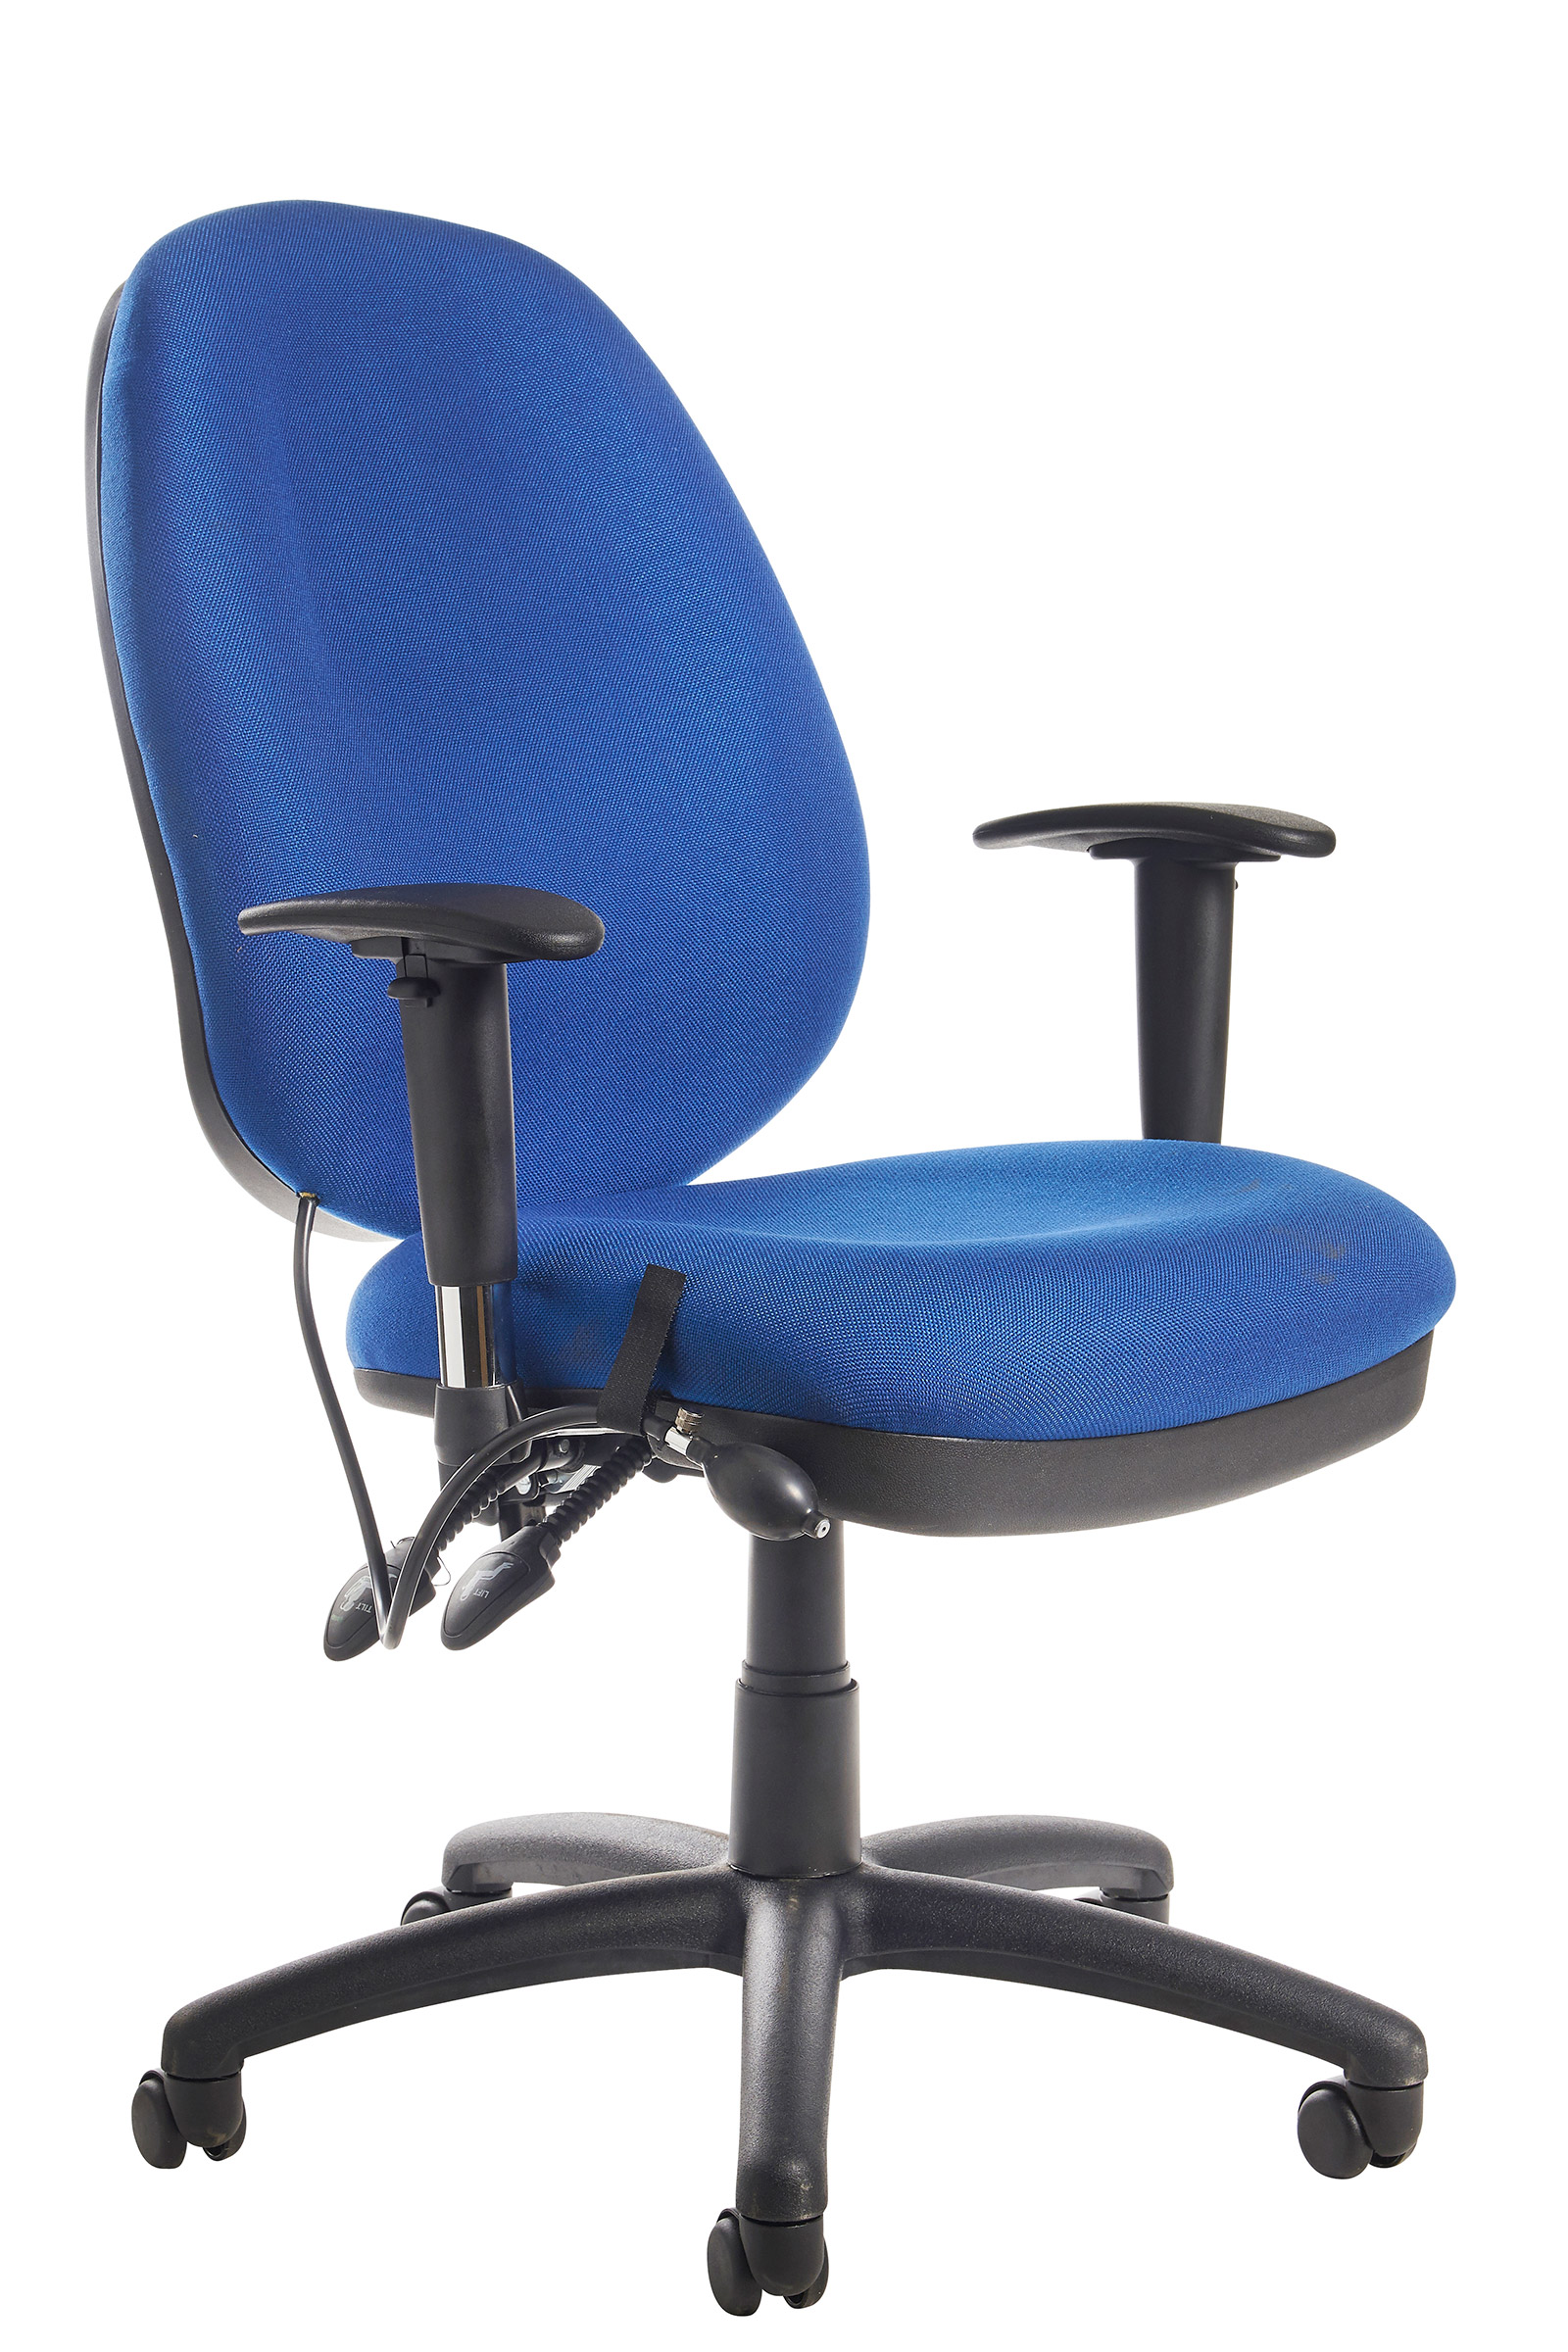 Sofia adjustable lumbar operators chair